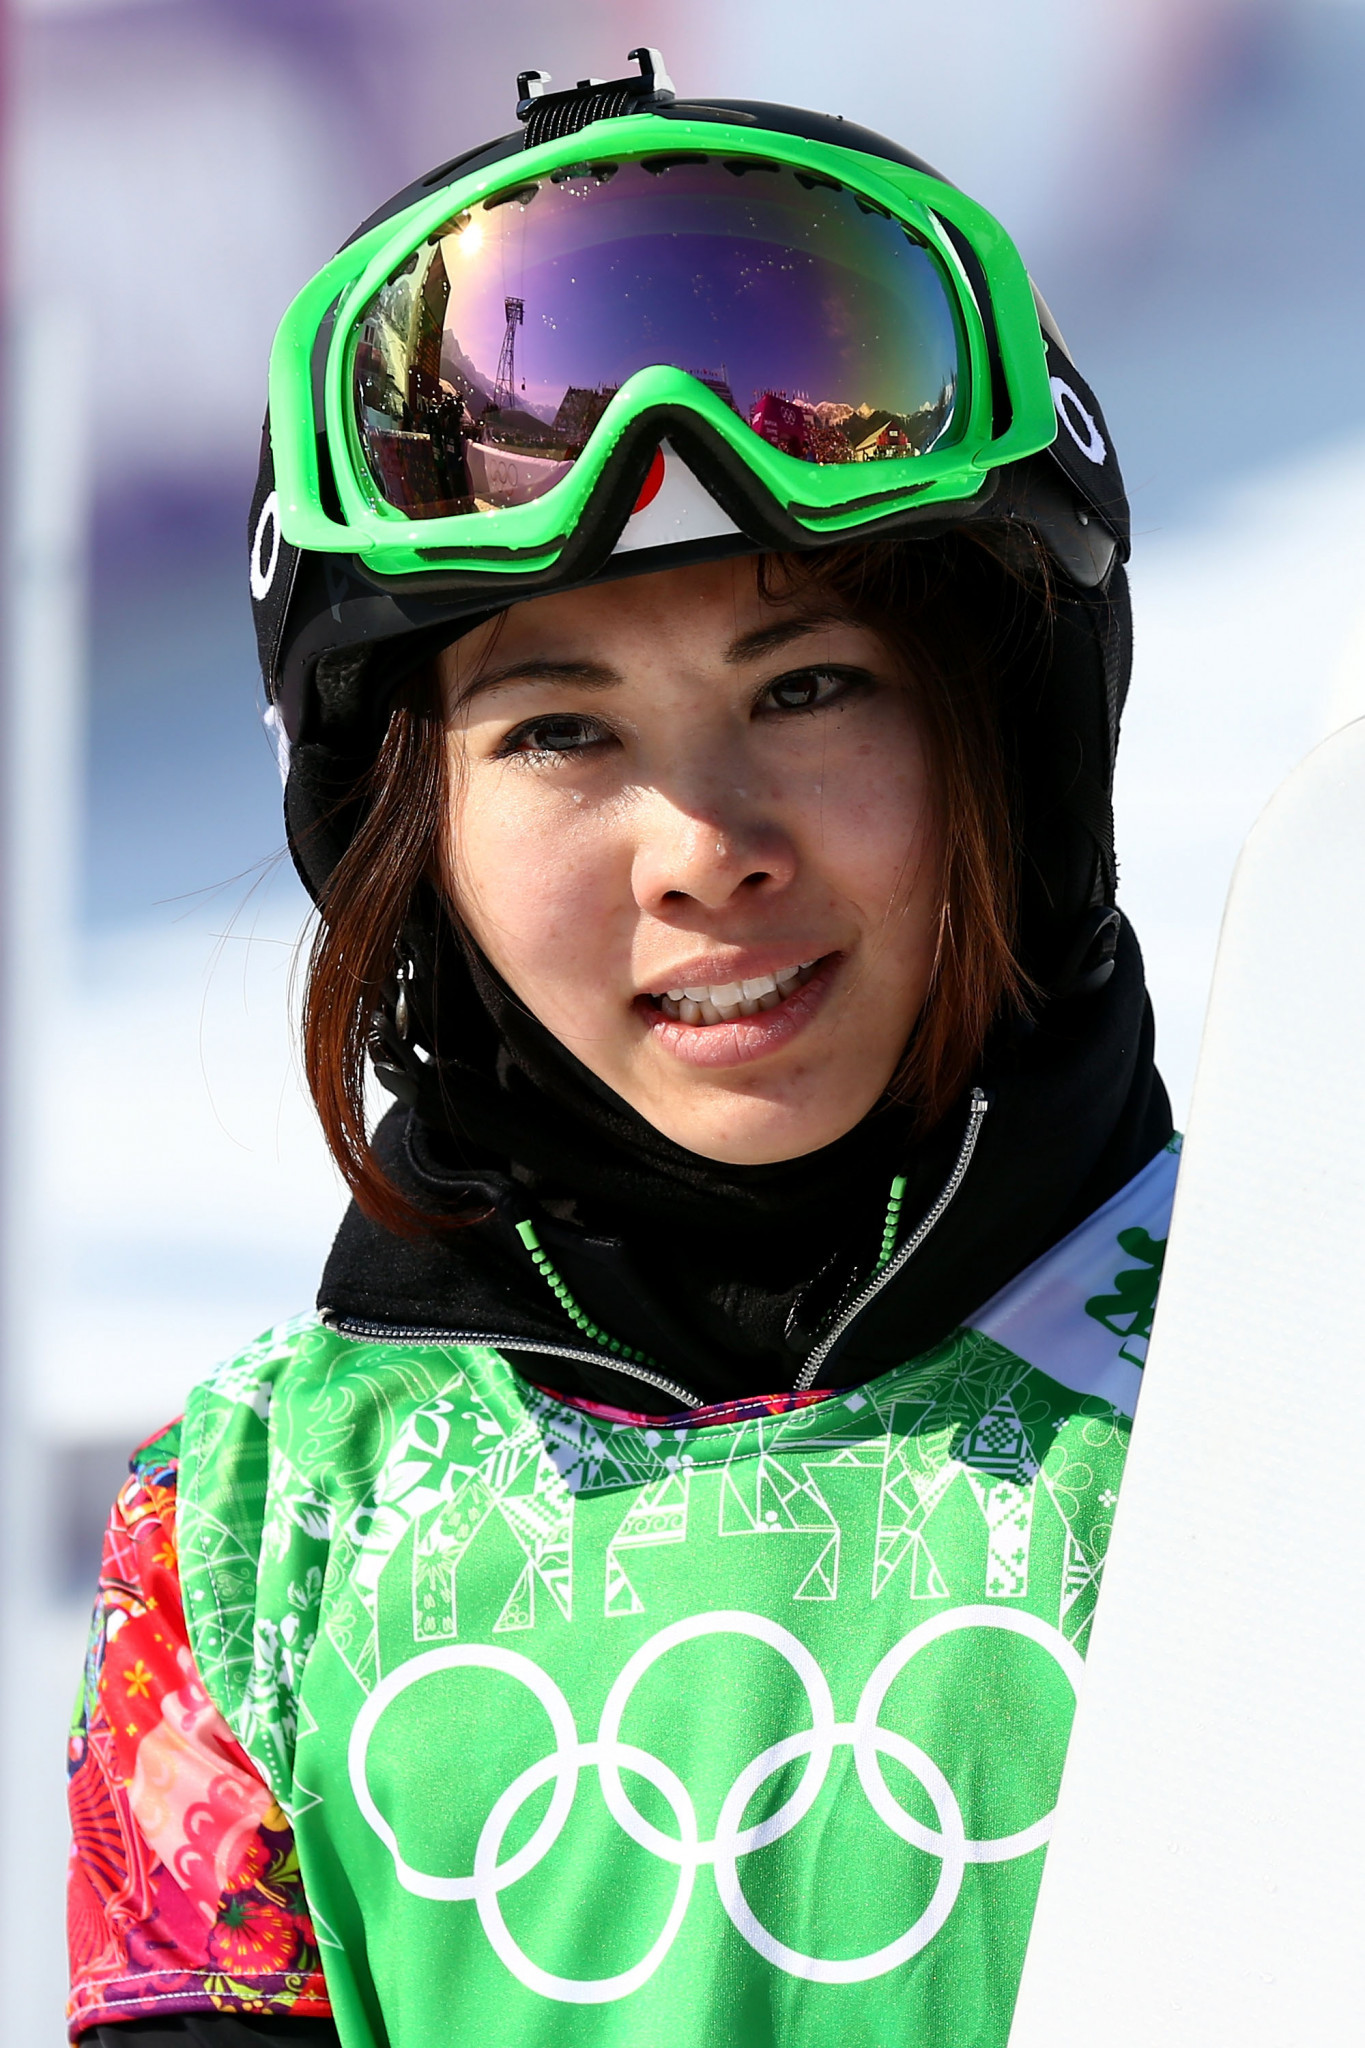 Yuka Fujimori, a former SBX racer with two Olympics behind her in 2006 and 2014, underlined her successful switch to slopestyle ©Getty Images